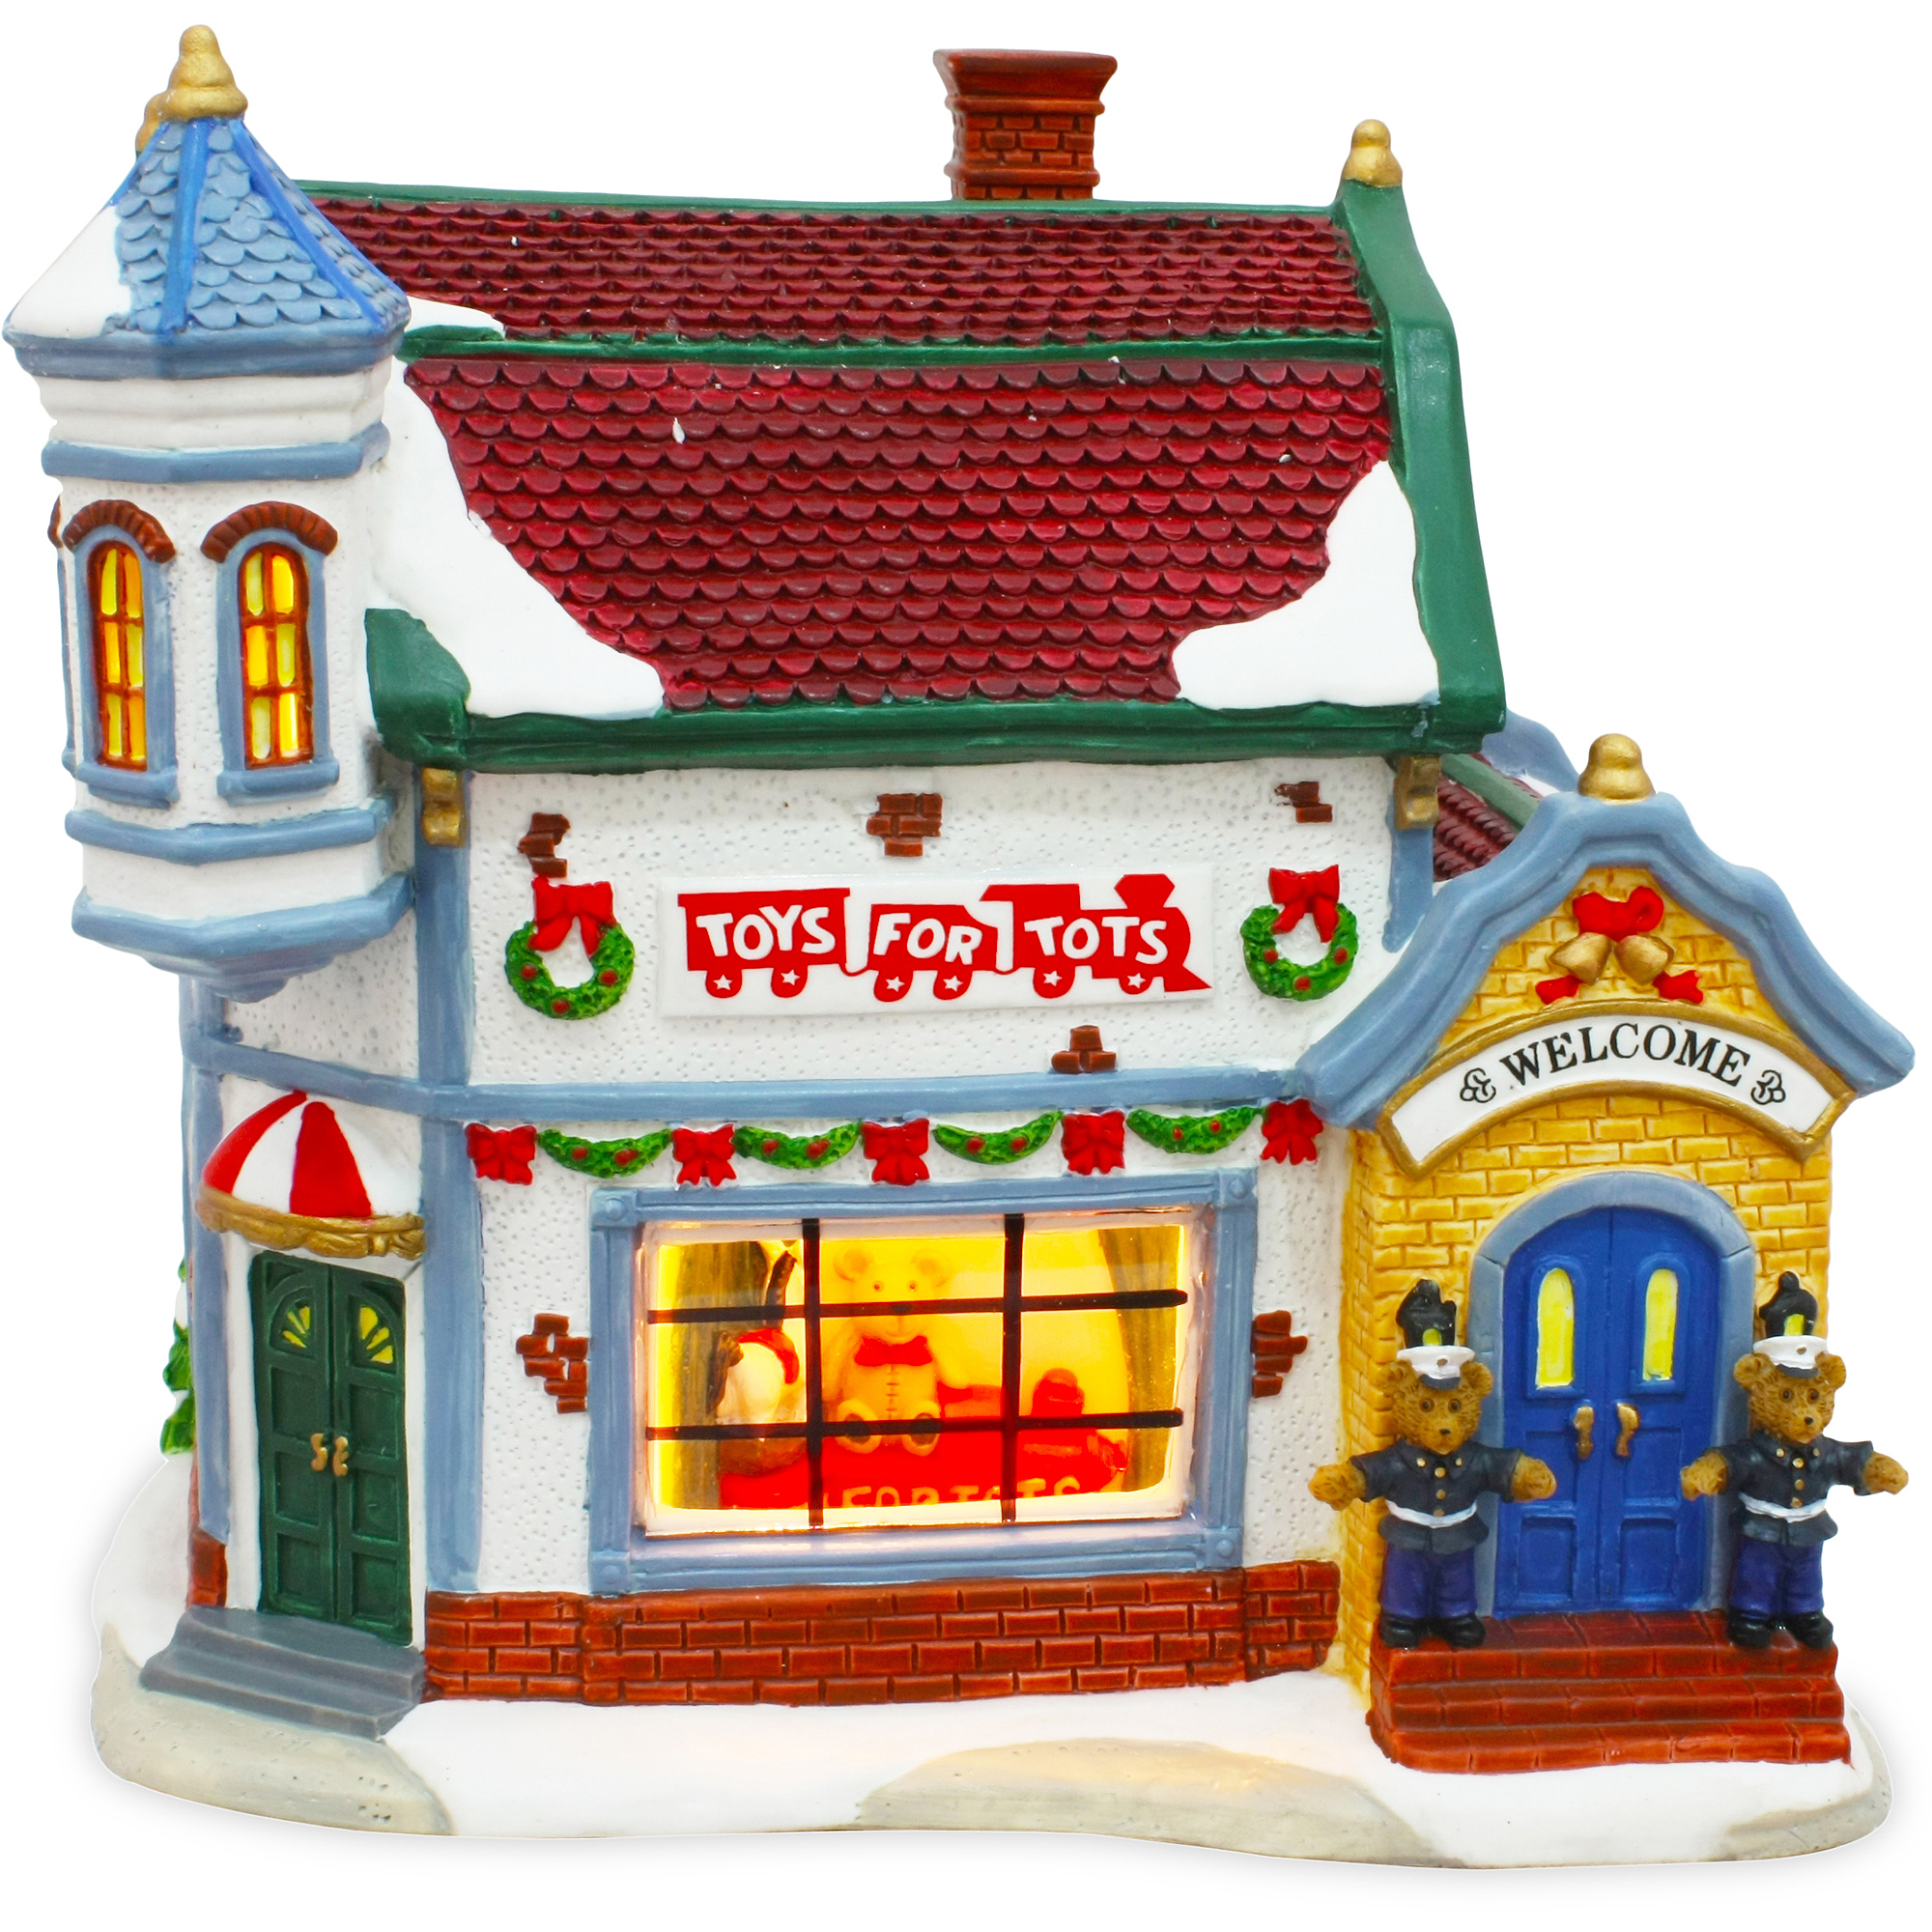 Toys For Tots Building Christmas Village Figurine Piece - Walmart.com